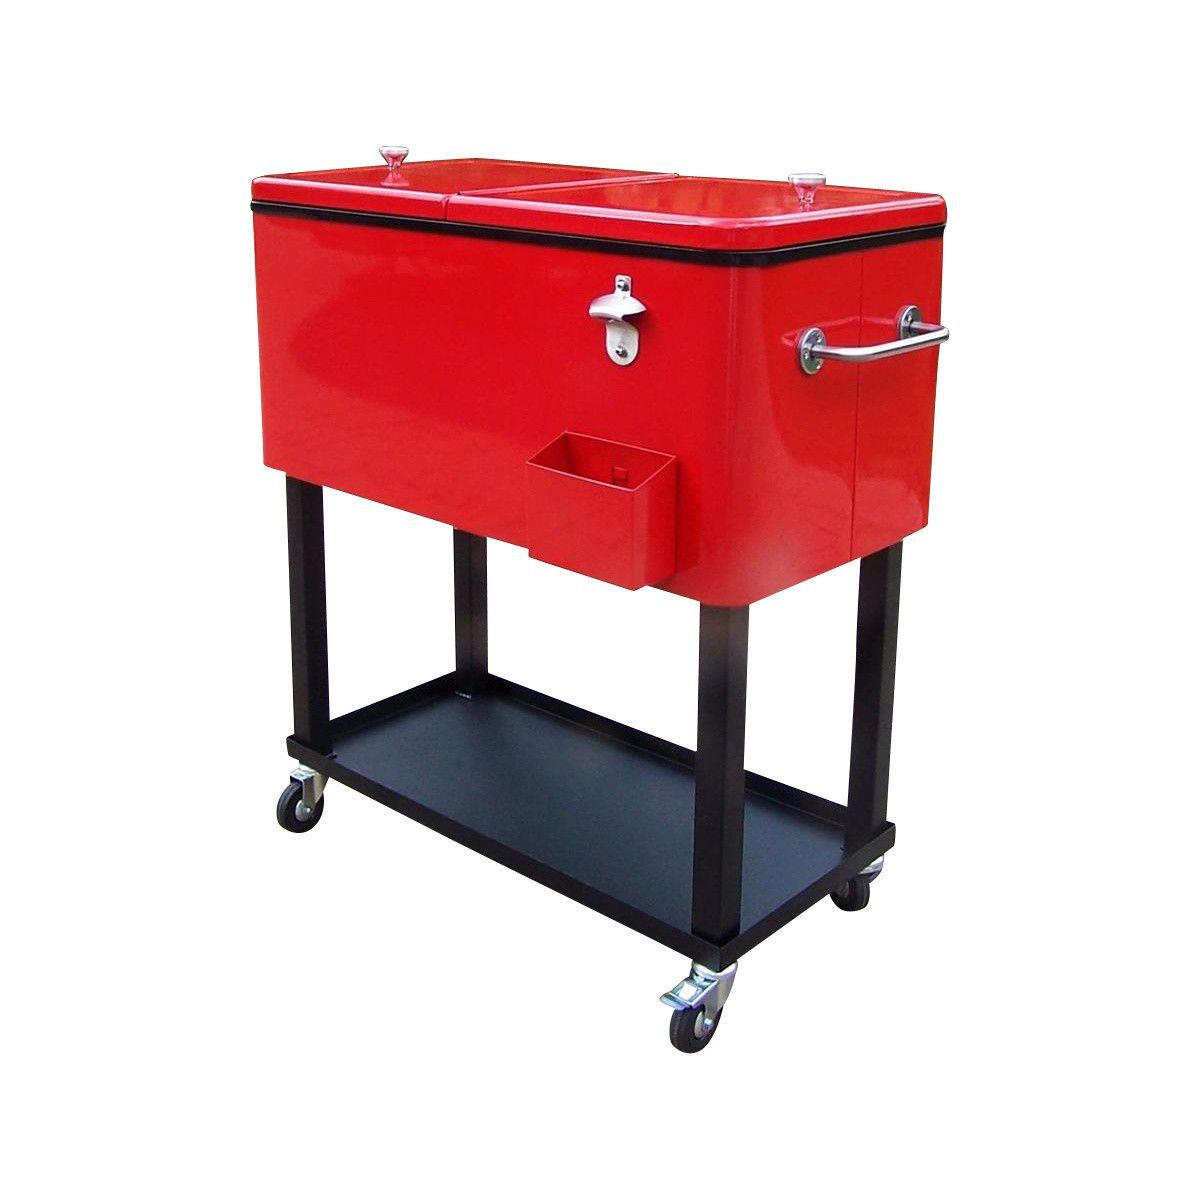 Red patio cooler on wheels photo